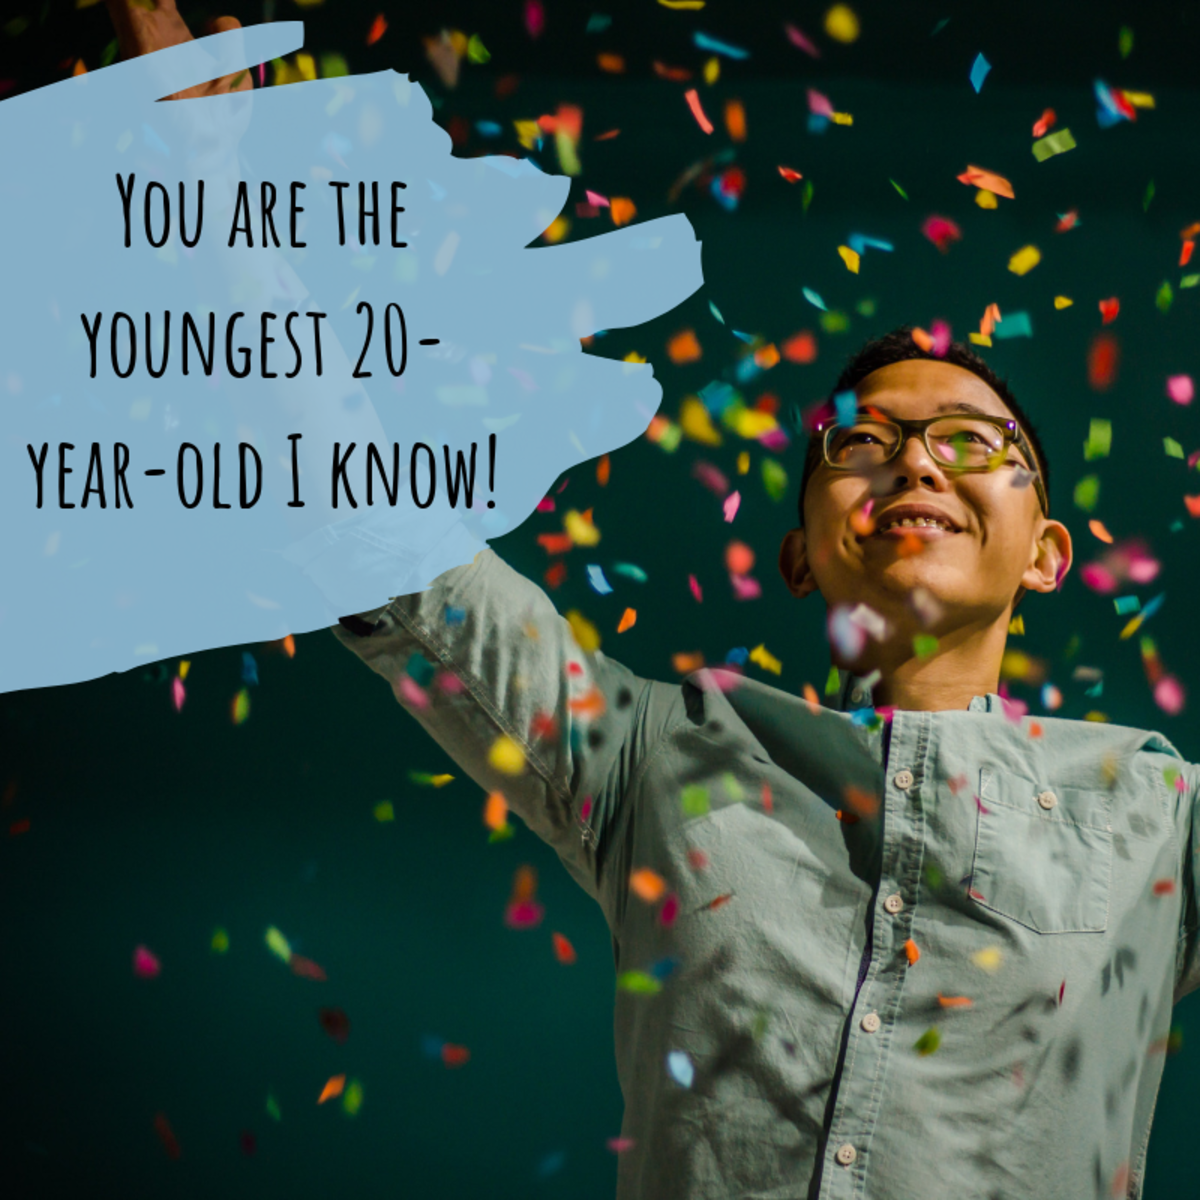 For one moment on a 20-year old's birthday, they are the youngest 20-year old in the world.